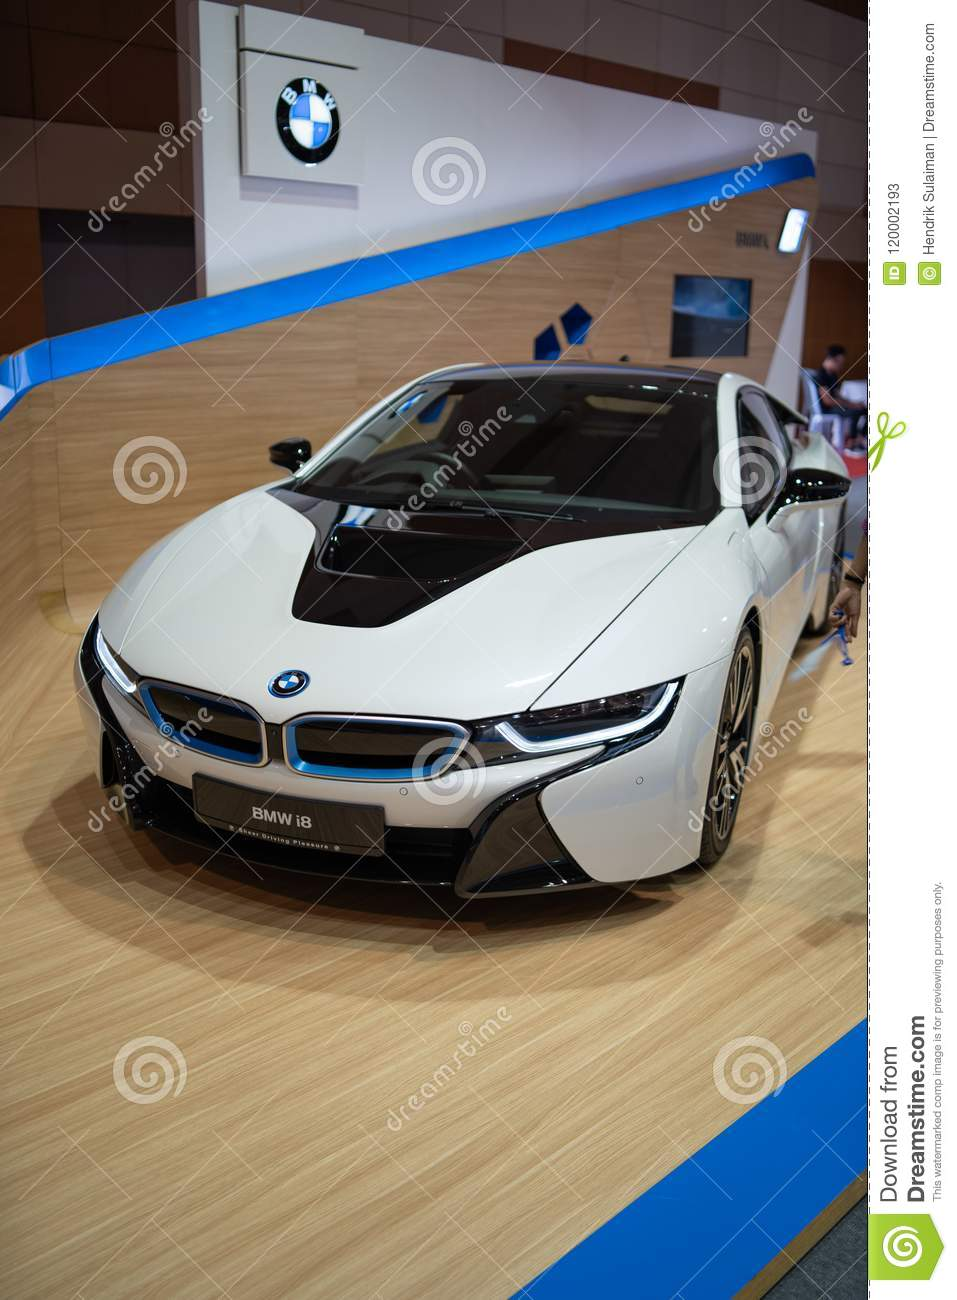 New Bmw I8 2018 Editorial Stock Photo Image Of Event 120002193